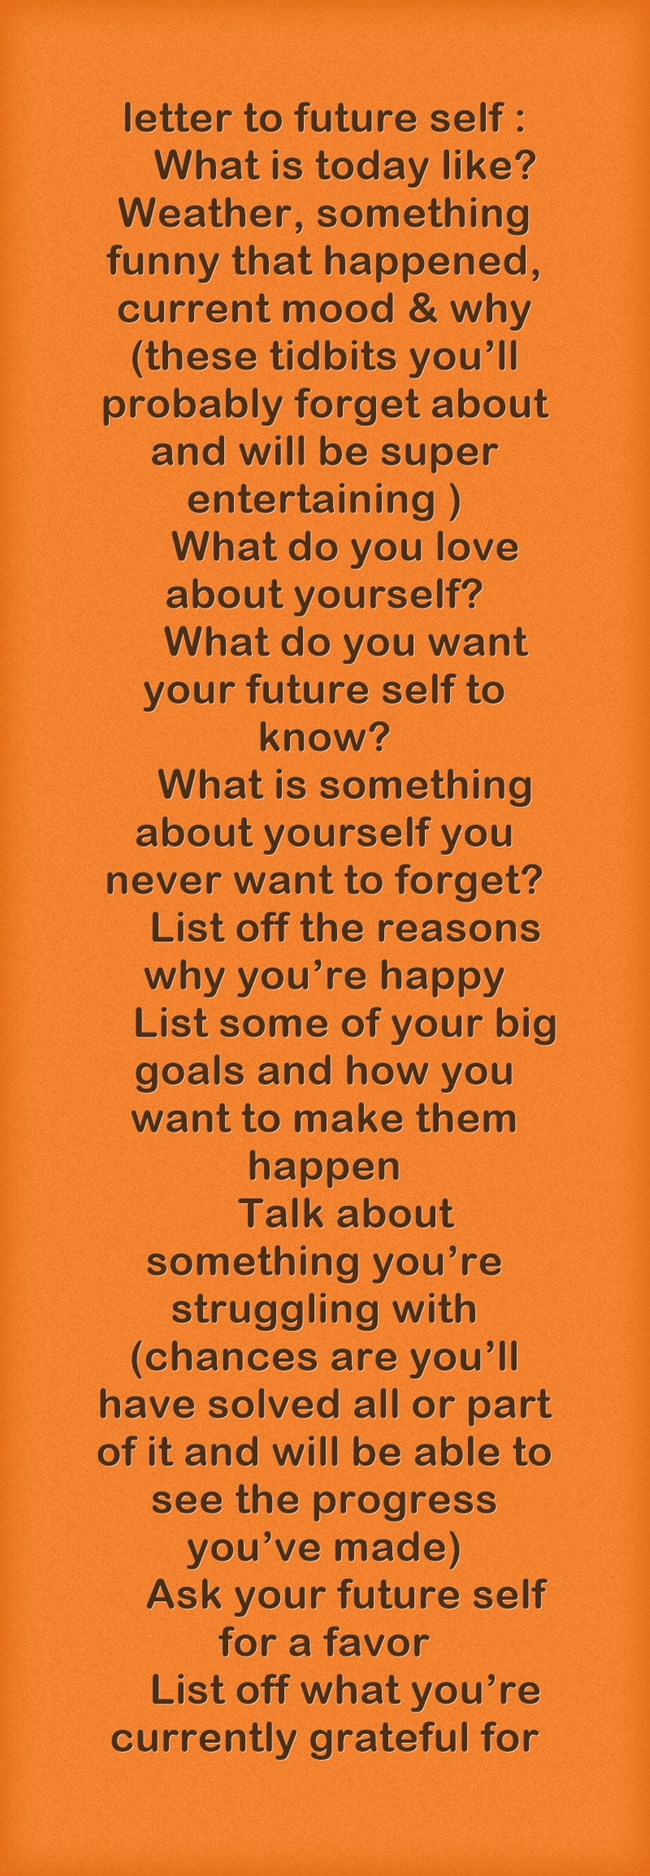 letter to future self My letter to my future self when you signed your independent beauty consultant agreement, what dream was set free in the space below, write a letter to your future self (6 weeks from now), letting her know what expectations your present self has of this ecourse and how it can help you achieve them.